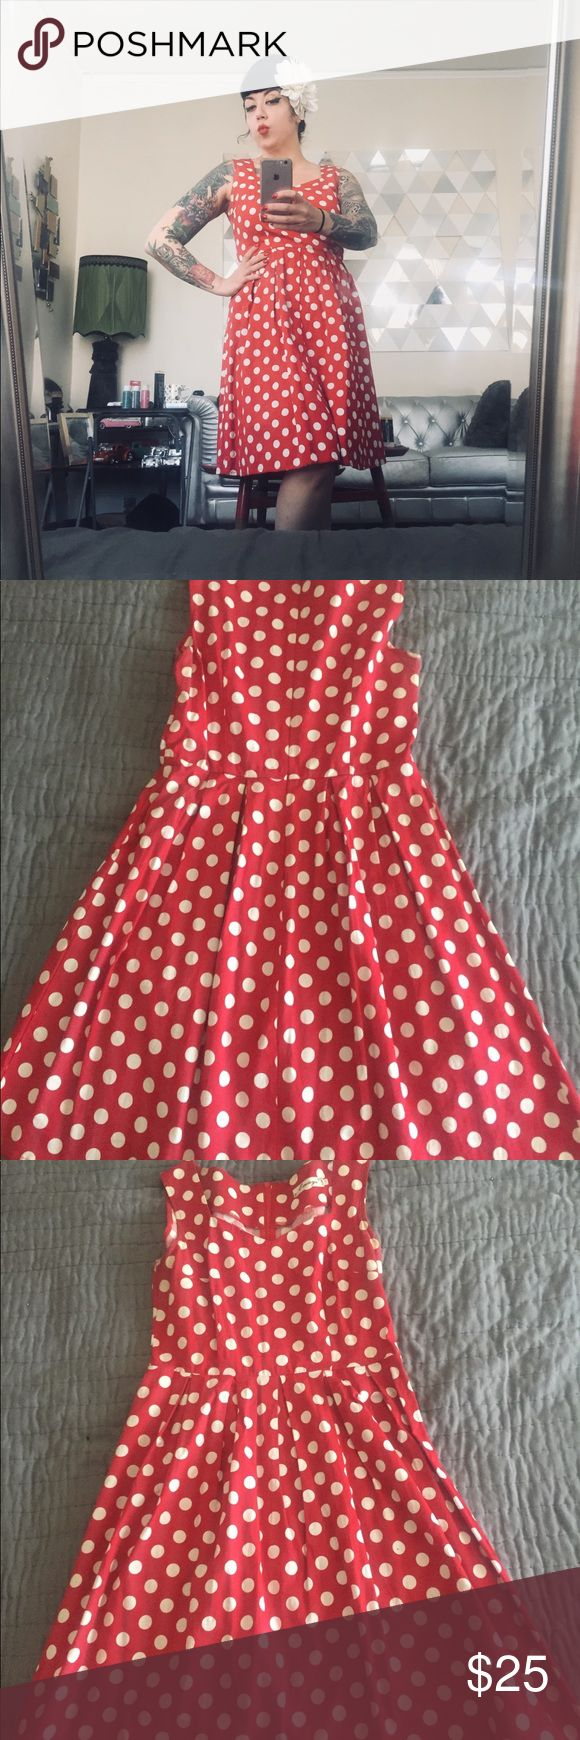 "Pin up polka dot A line dress Super flattering red and white polka dot dress. Great for all figures!! Very comfortable. Pair it with a red cropped sweater, chunky earrings, and white wedges!  Bust: 18"" laying flat  Waist: 15.5"" laying flat  Hips: A line/open Length: 37"" shoulder to hem Dresses Midi"